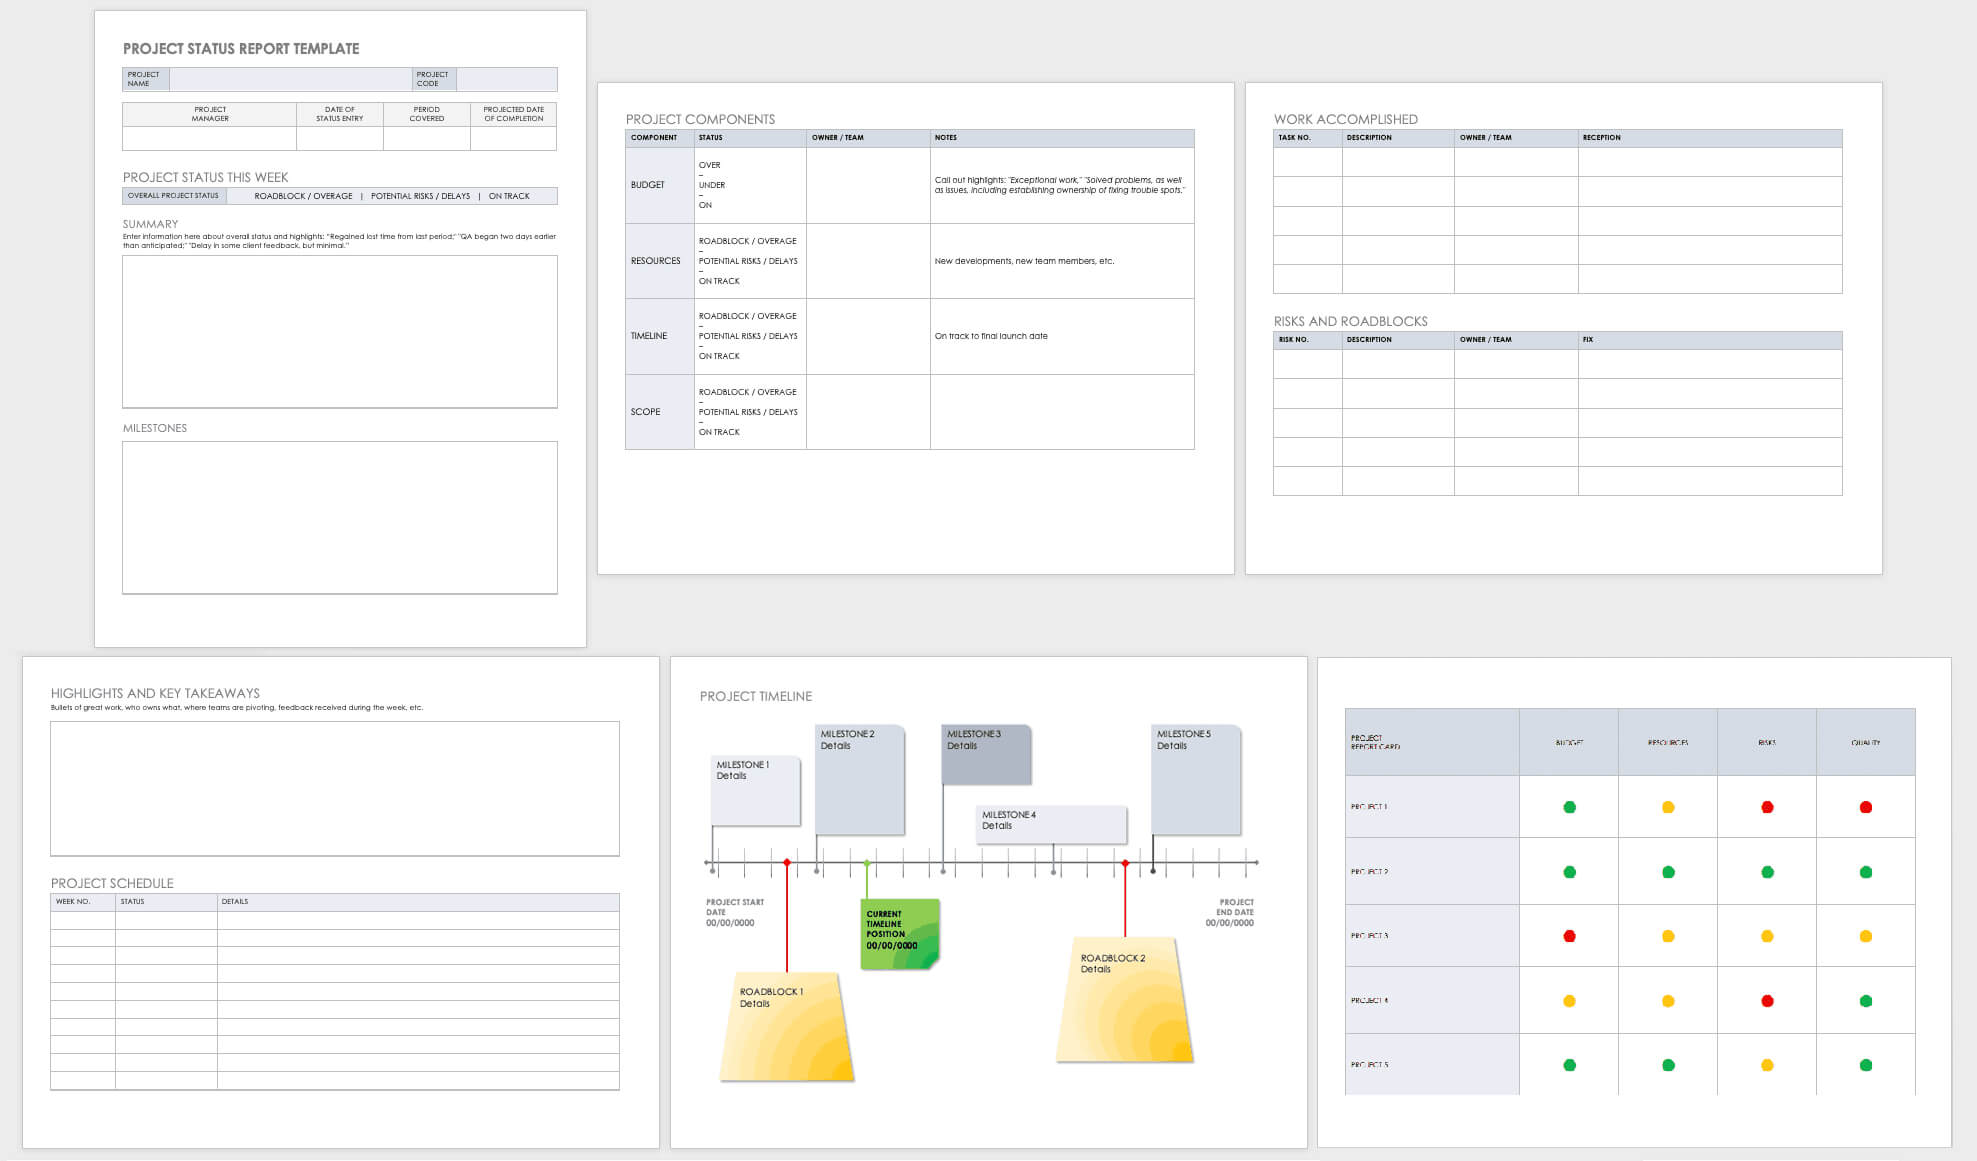 Free Project Report Templates | Smartsheet Intended For Post Project Report Template